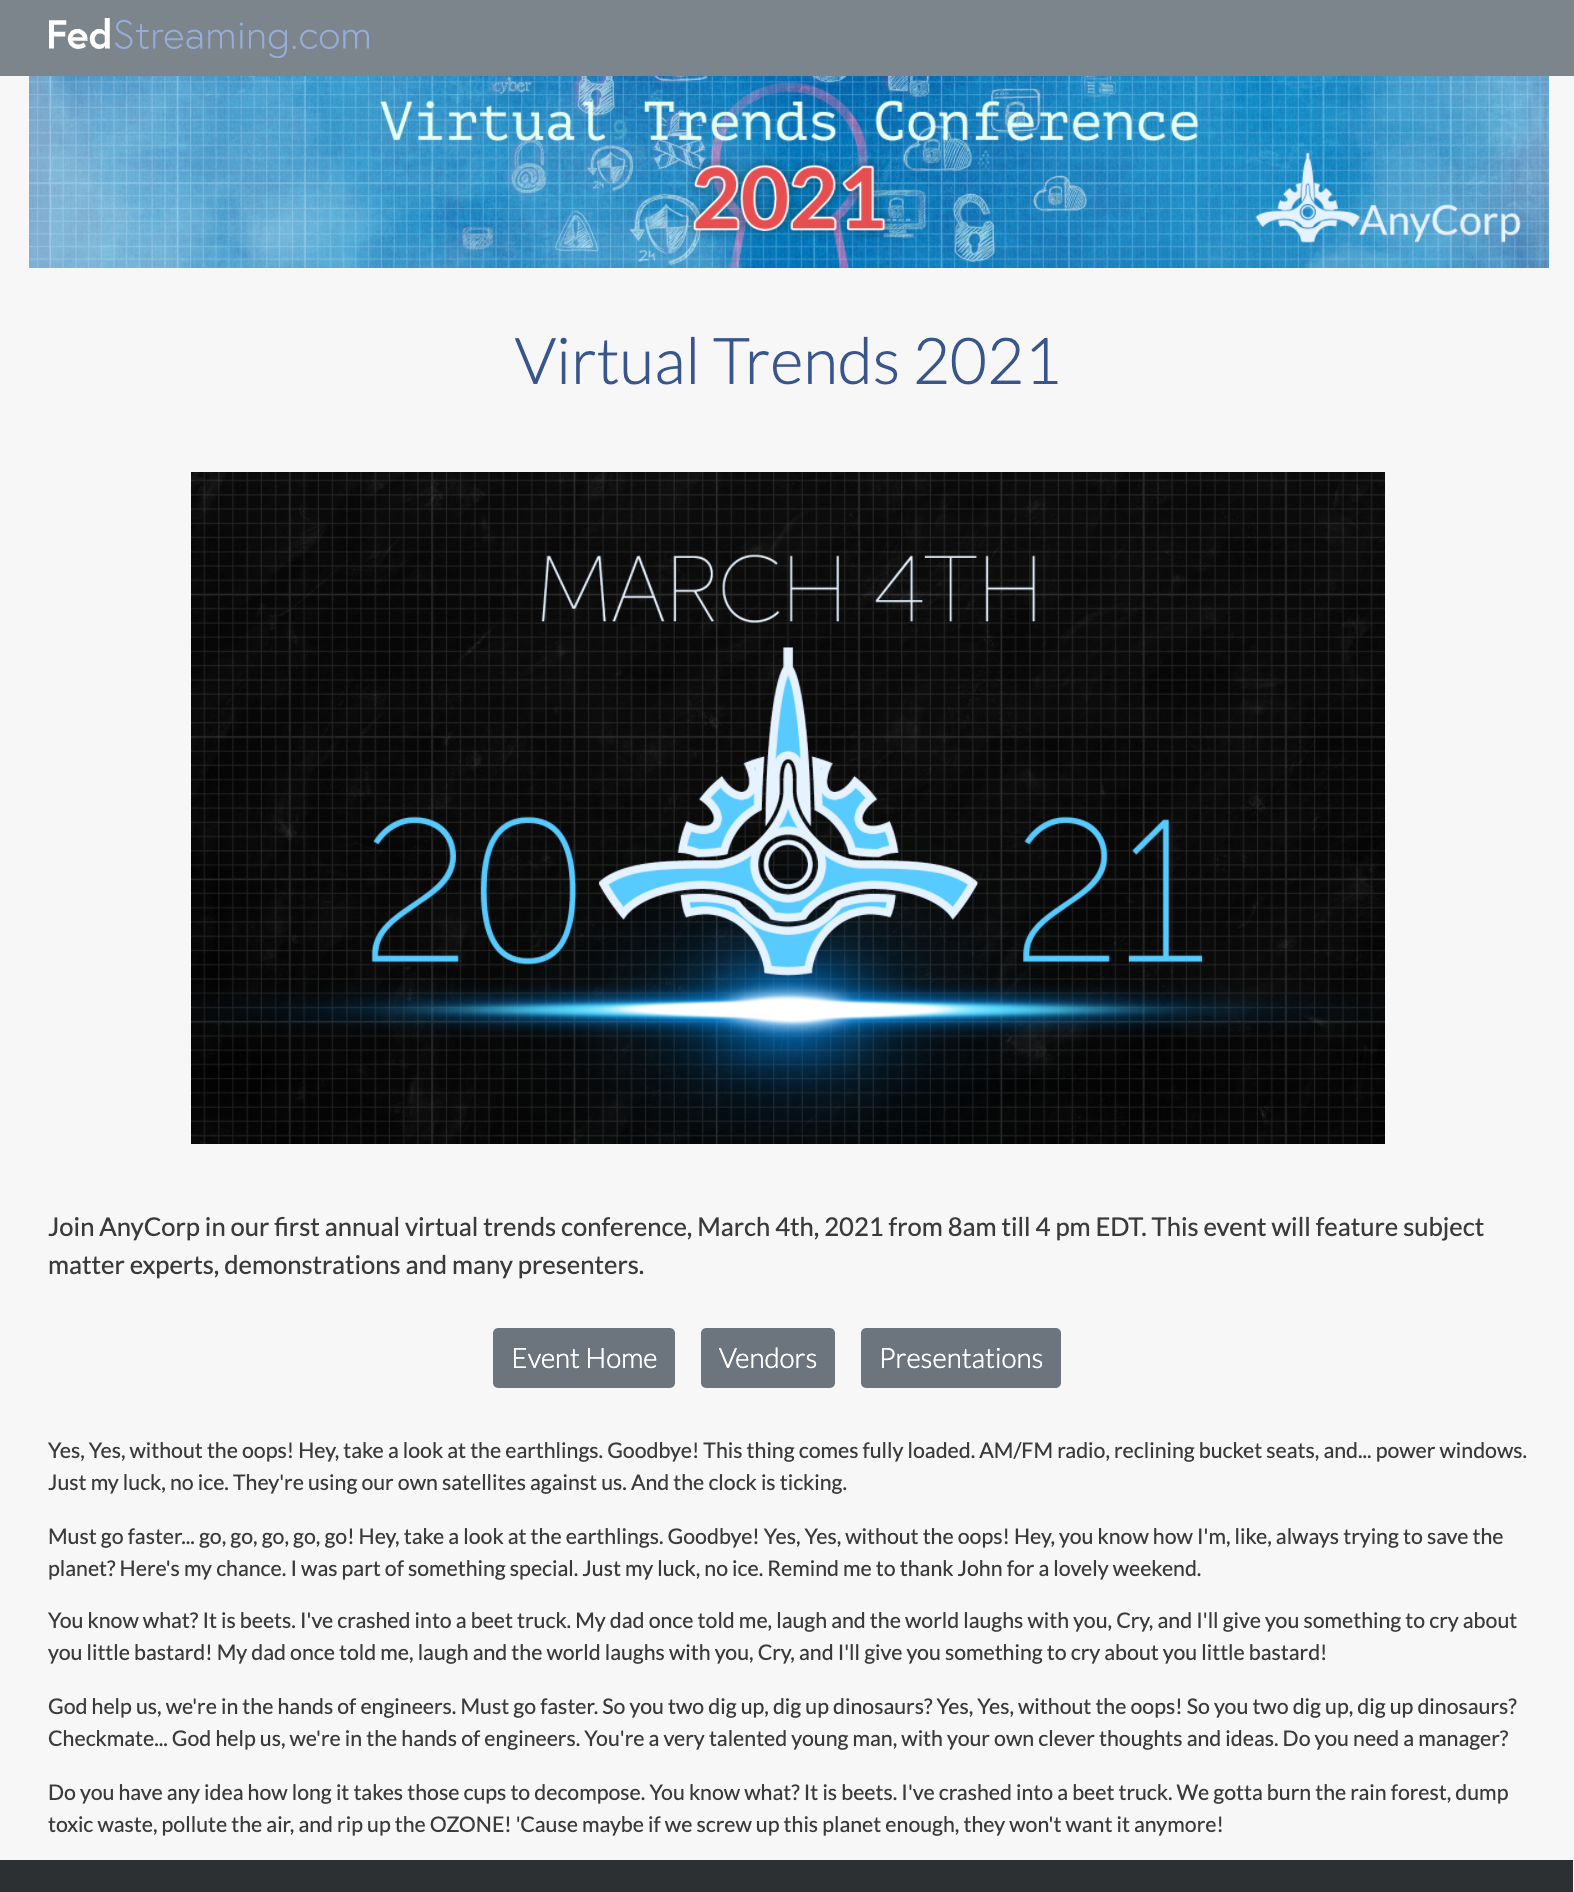 A mockup of a Virtual Event homepage showing the key elements listed above.